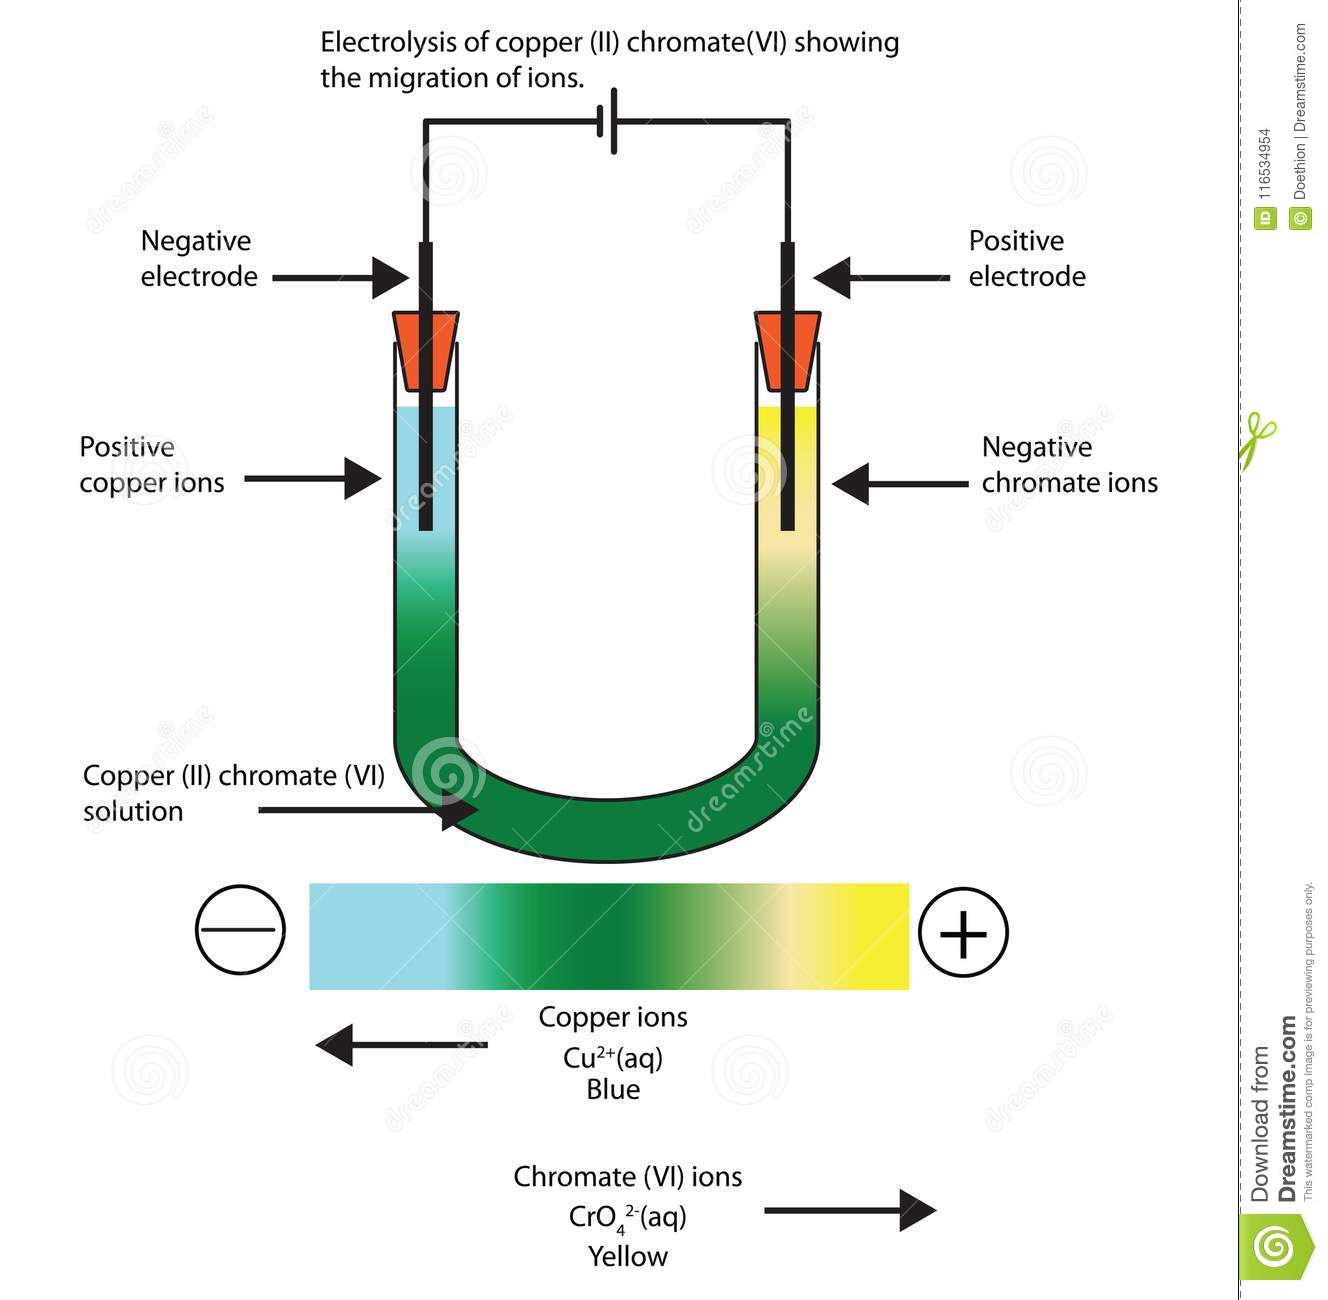 hight resolution of diagram of the electrolysis of copper ii chromate vi sowing stockdiagram of copper 14